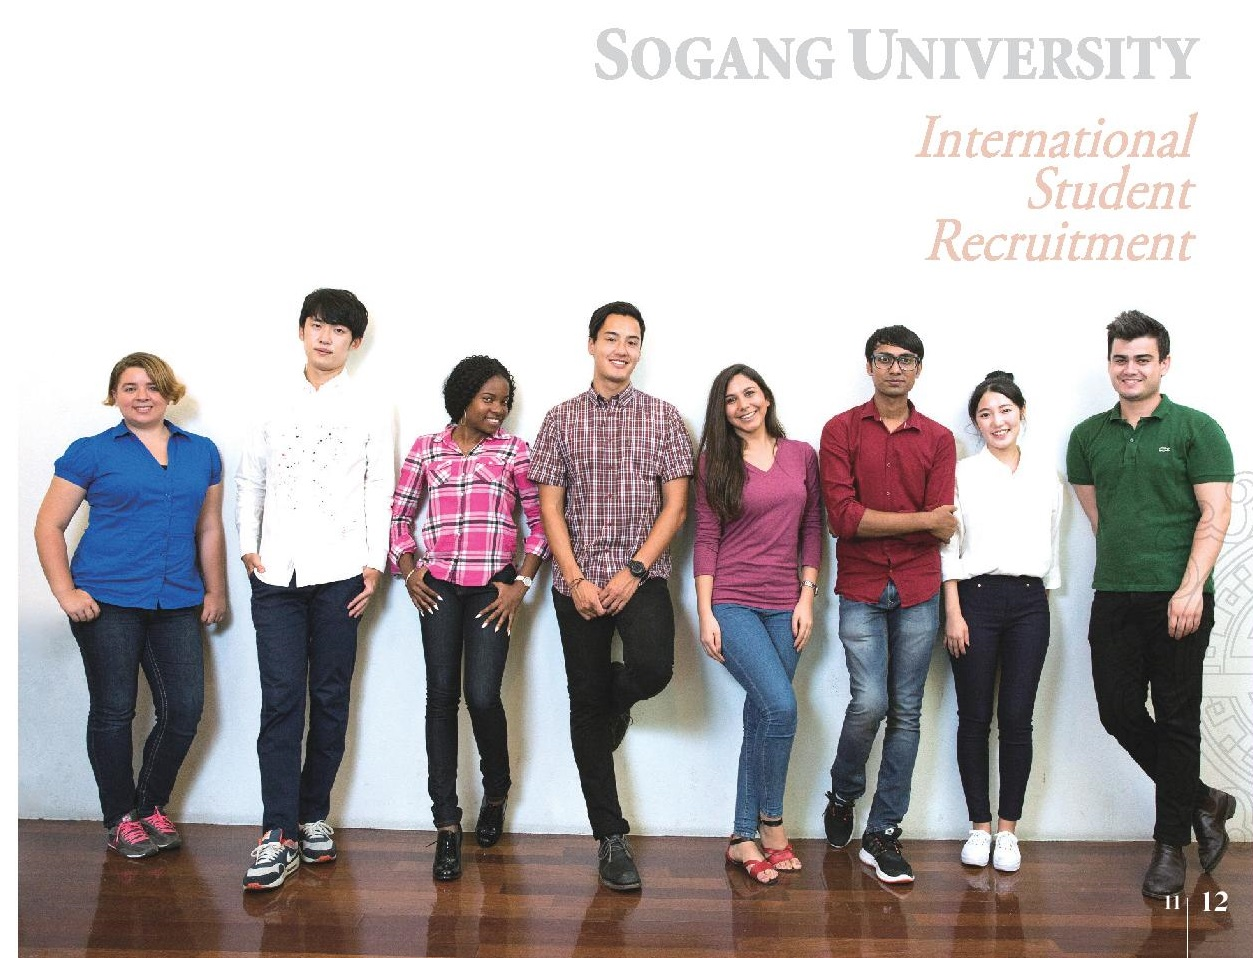 Sogang University (international student recruitment)-page-007 - Copy